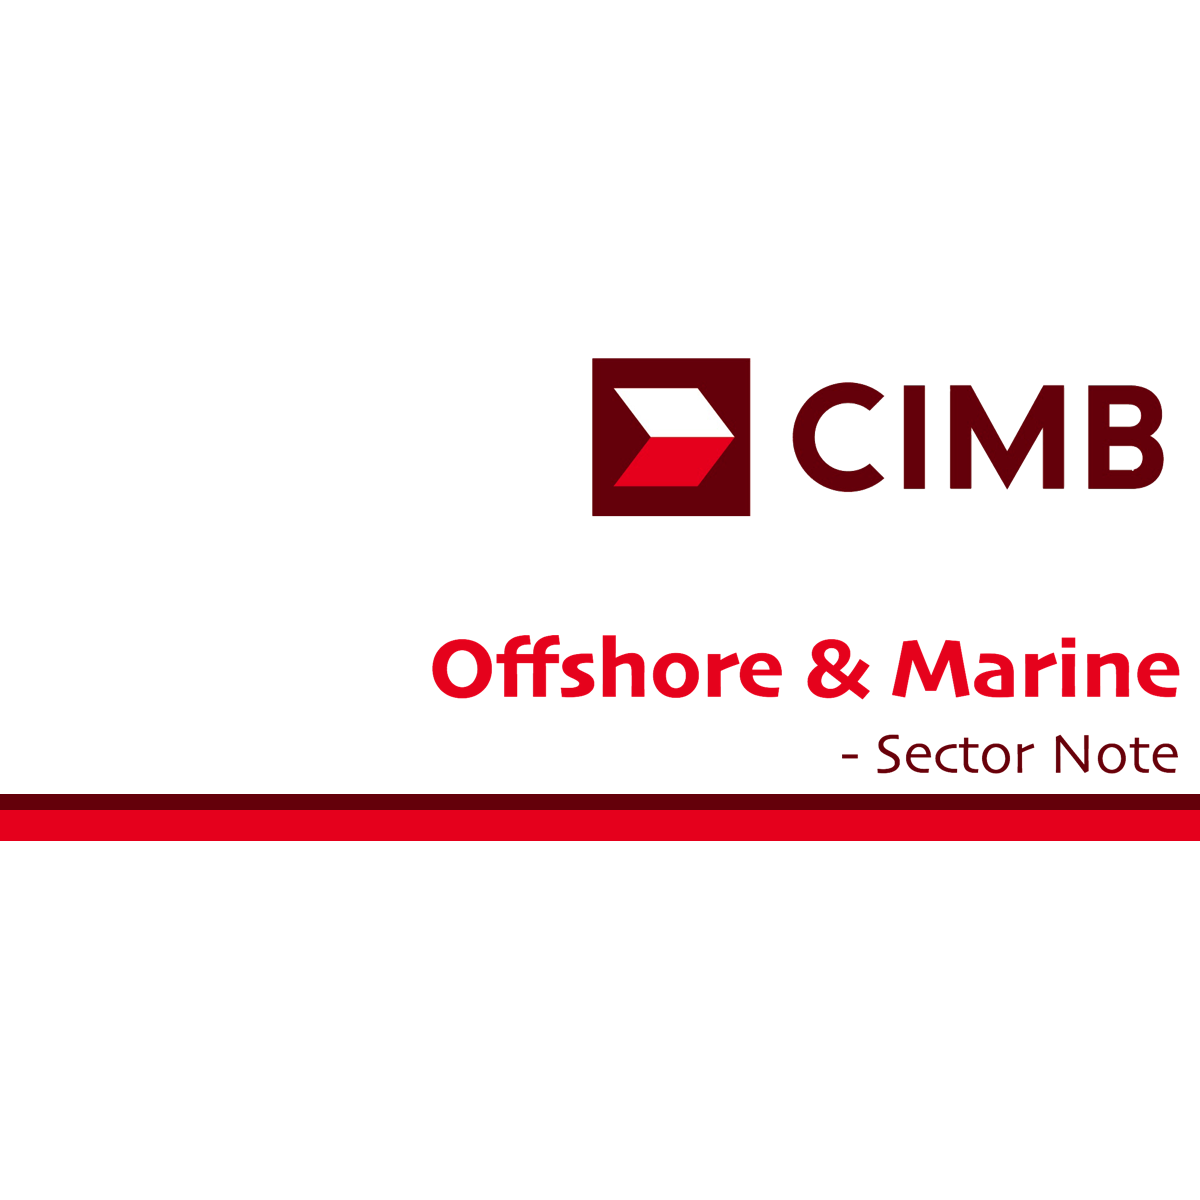 Navigating Singapore ~ Offshore and Marine - CIMB Research 2016-12-05: Neutral, oil circular reference